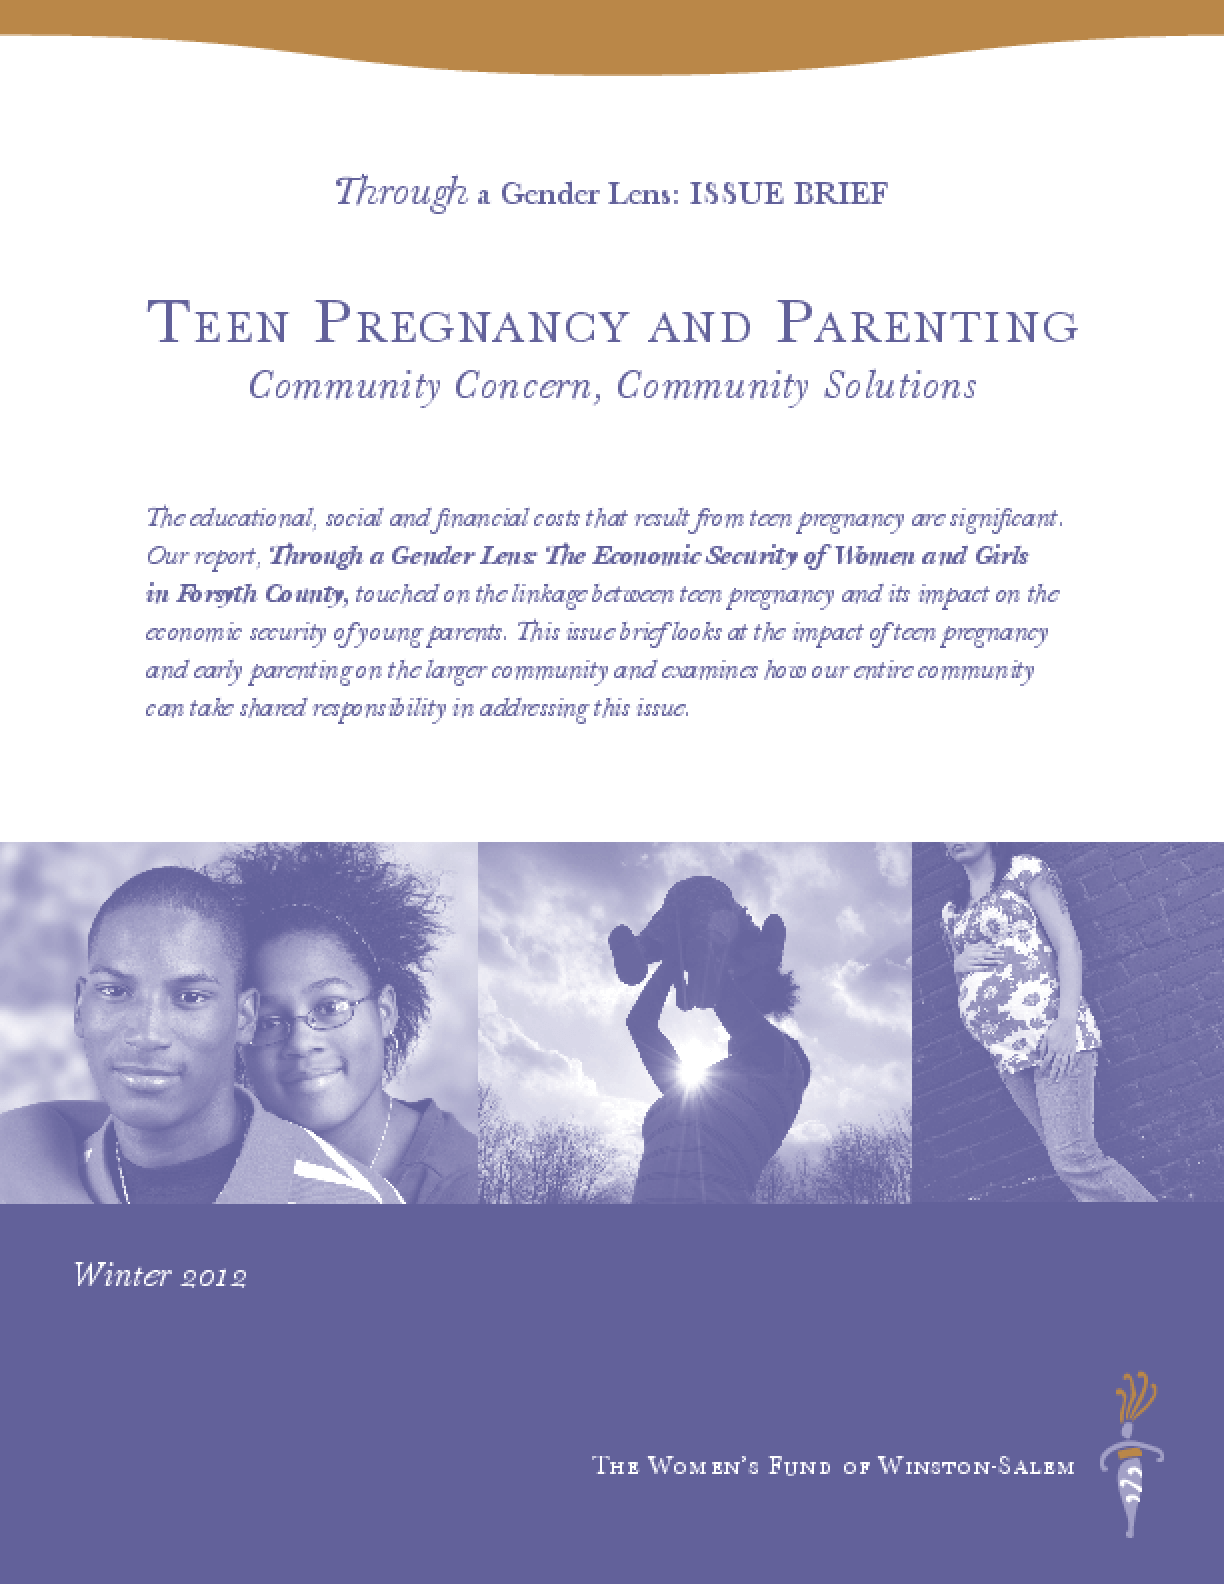 Teen Pregnancy and Parenting:Community Concern, Community Solutions